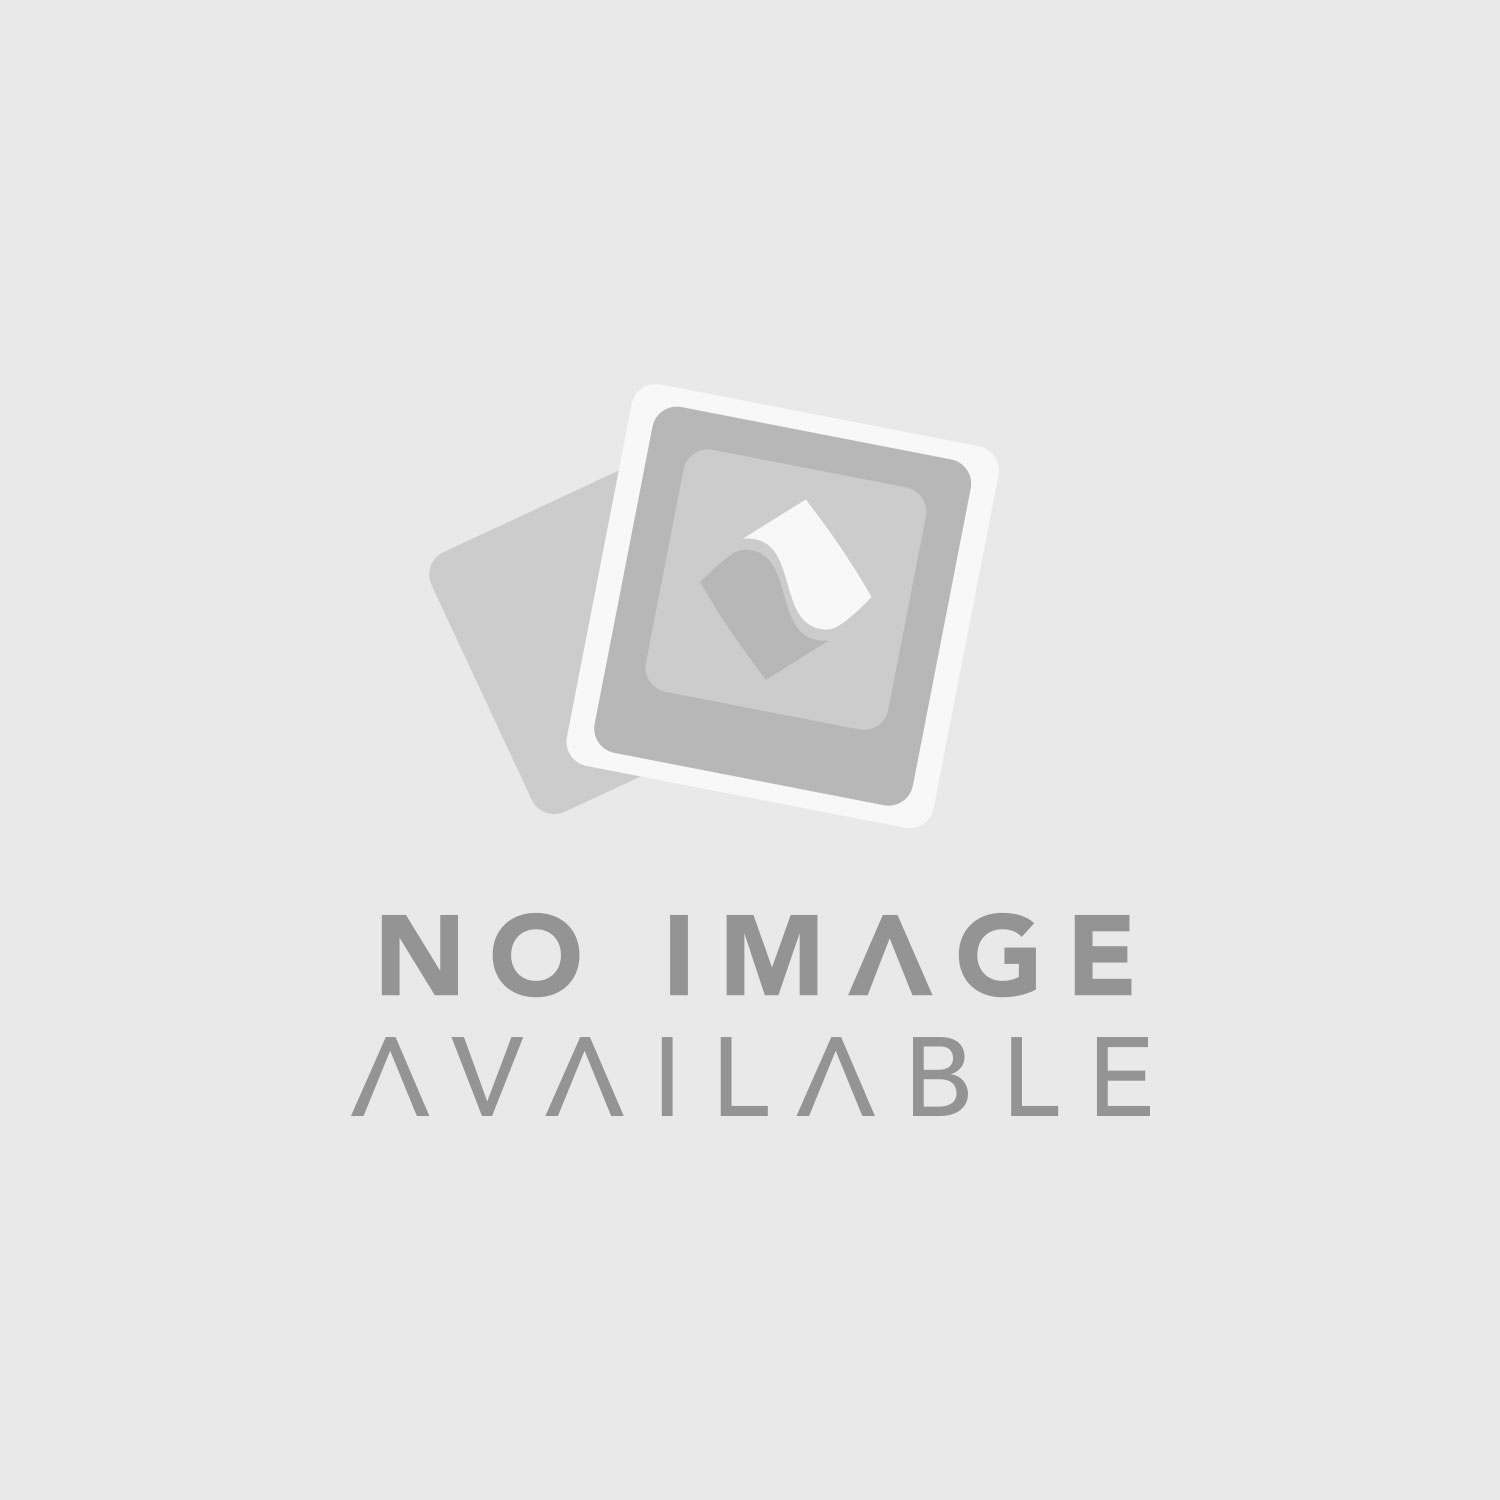 SKB 5FC-0907-4 Replacement Cubed Foam for 3i-0907-4-Series Cases